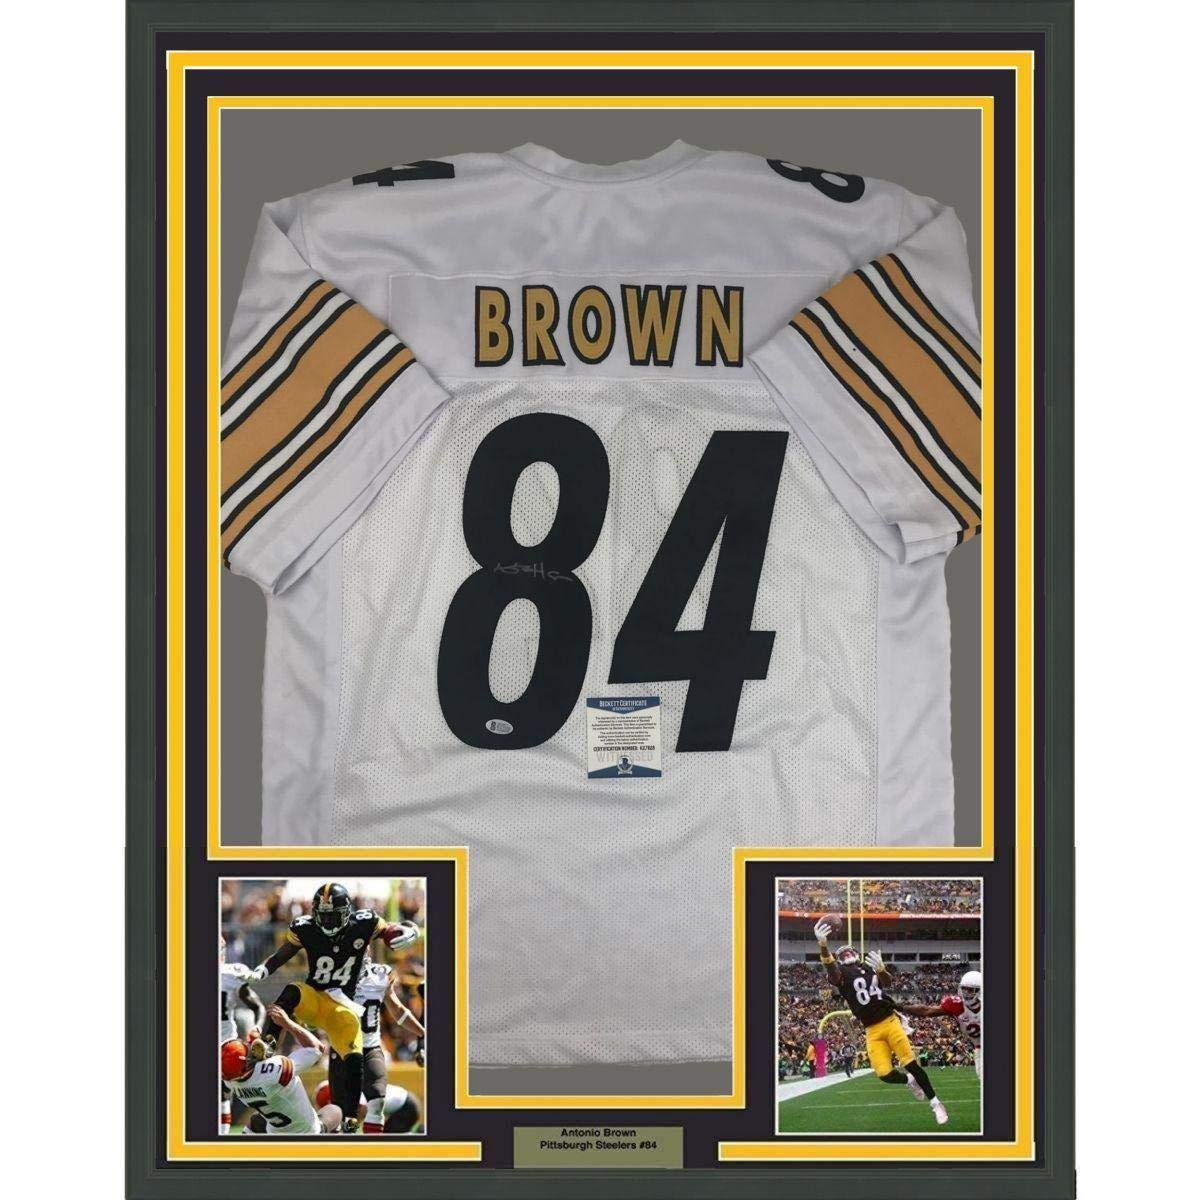 Antonio Brown Signed Jersey - FRAMED 33x42 White Beckett BAS COA - Beckett  Authentication - Autographed NFL Jerseys at Amazon s Sports Collectibles  Store 3b48d7294